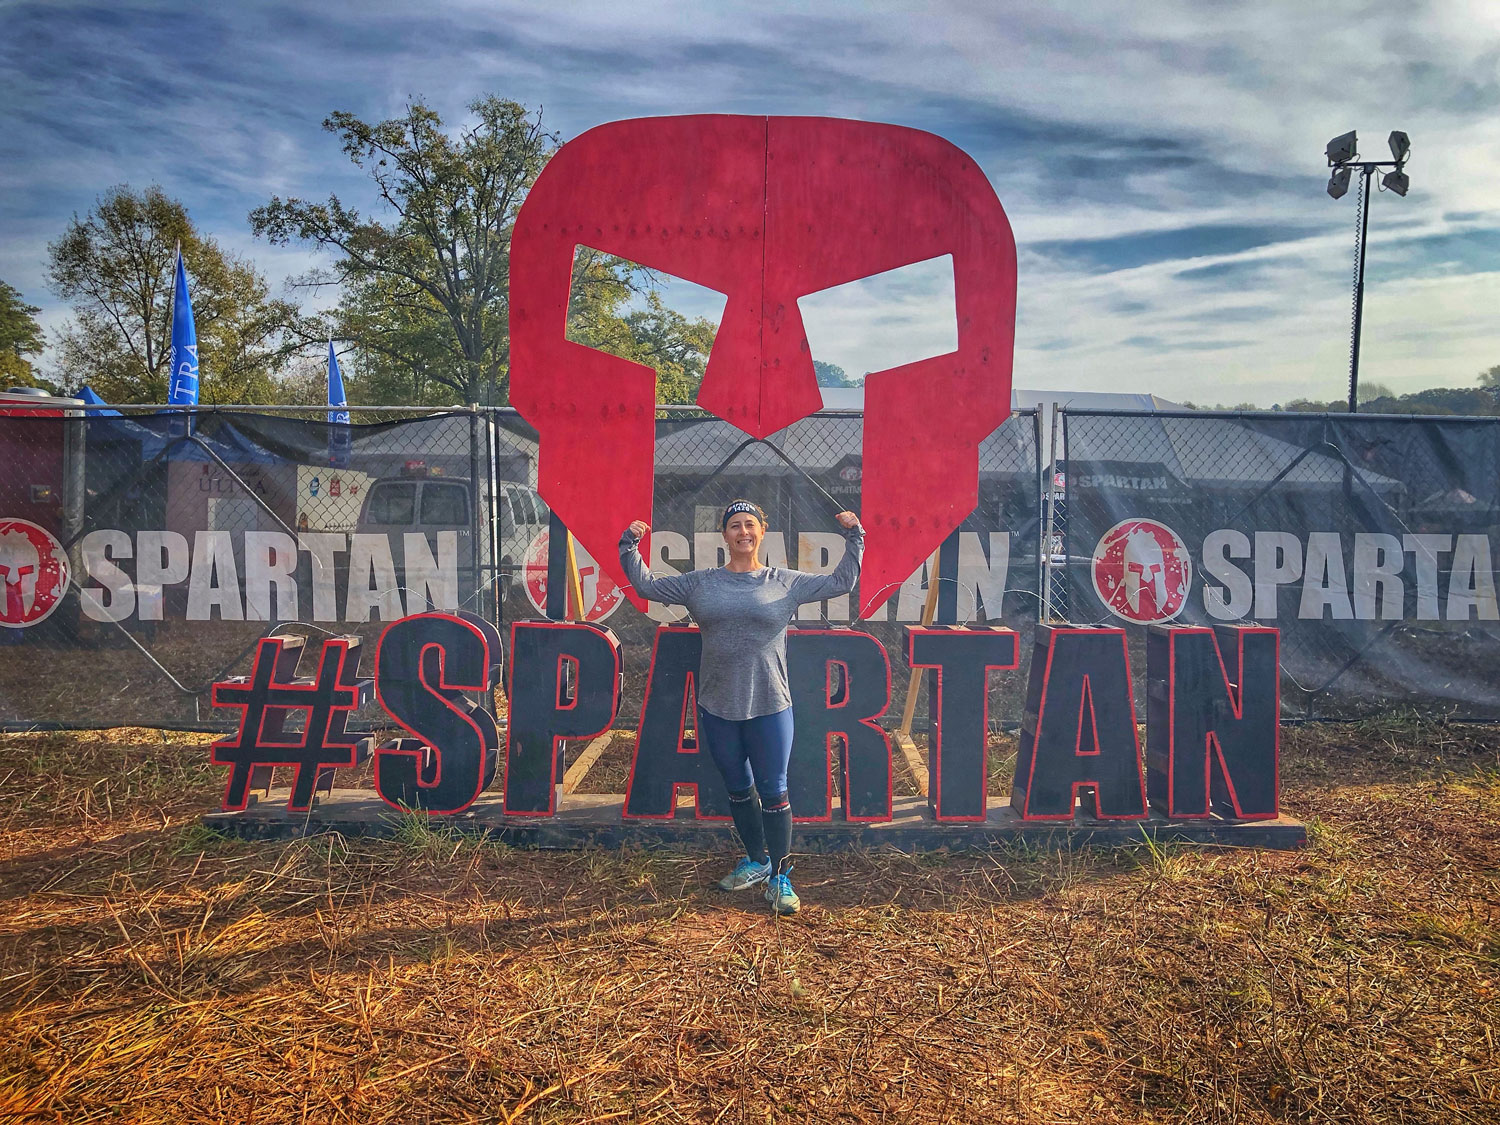 things to know about spartan race